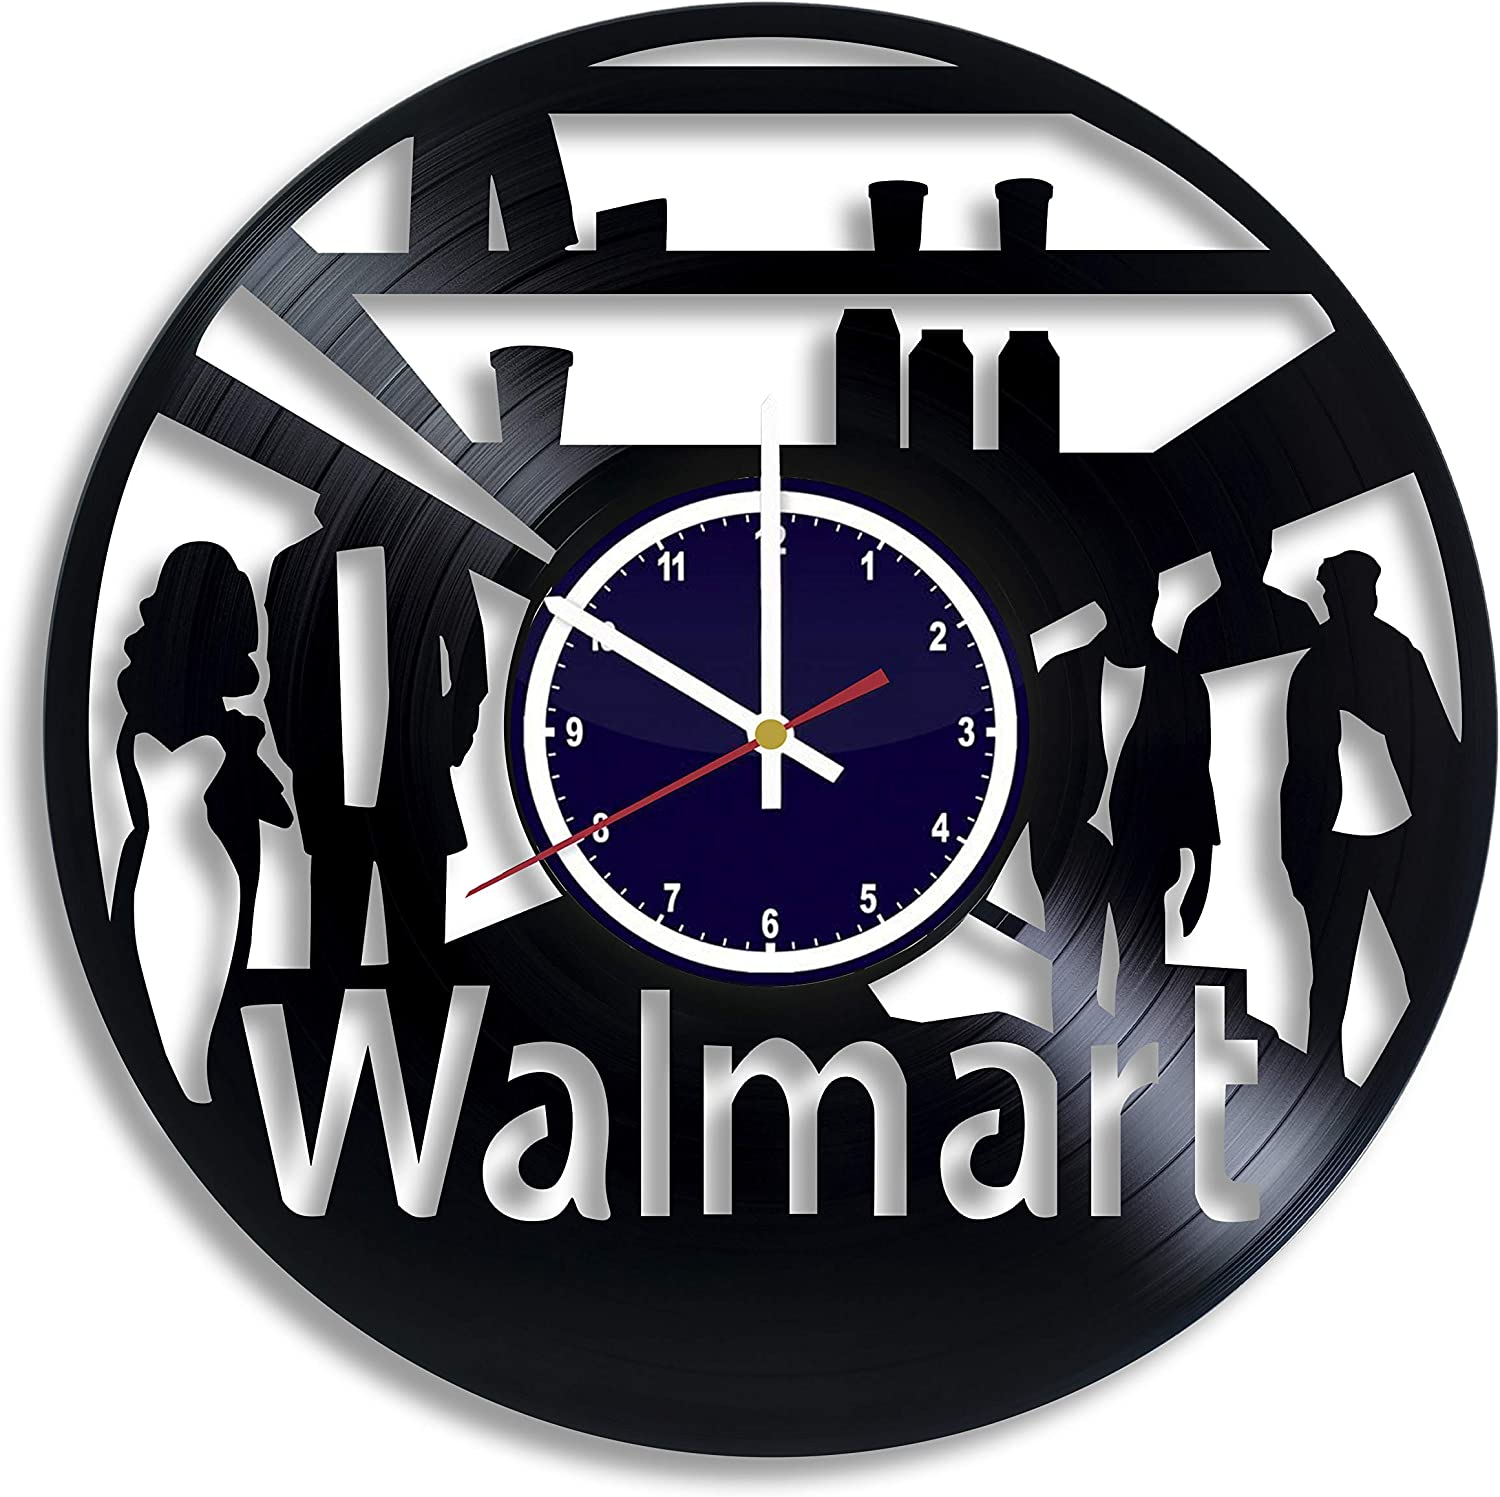 Amazon Com Buhnemoshop Walmart Company Handmade Vinyl Record Wall Clock Walmart Brand Logo Wall Poster Unique Kitchen Decor Ideas Walmart Gift For Him And Her Home Kitchen